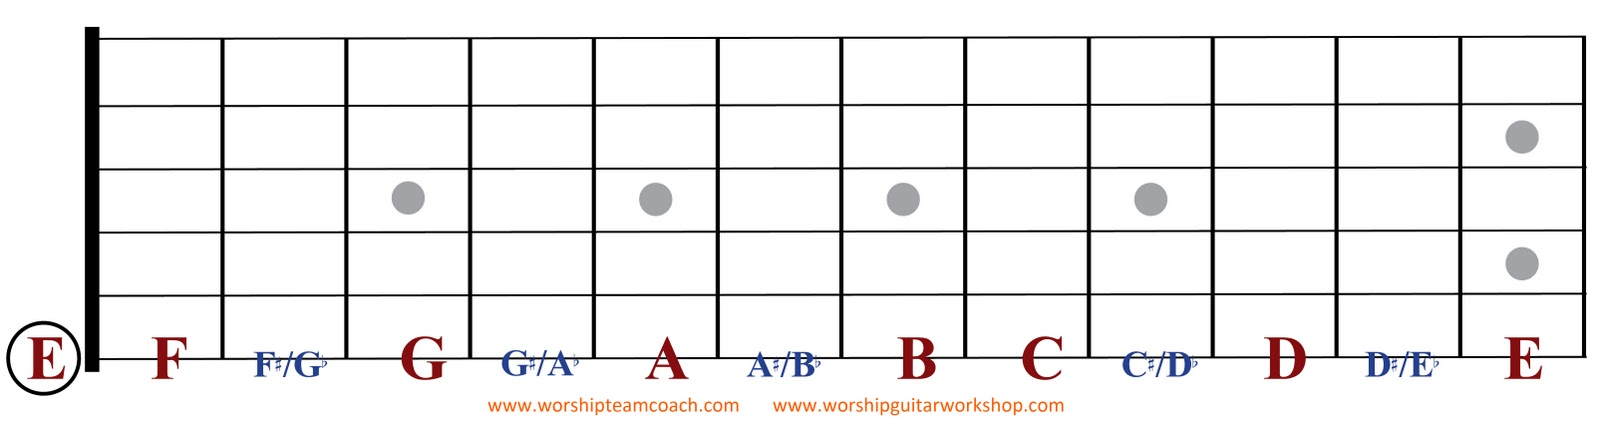 Paper Blank Guitar Neck Free Printable Chart Bass Chords Major